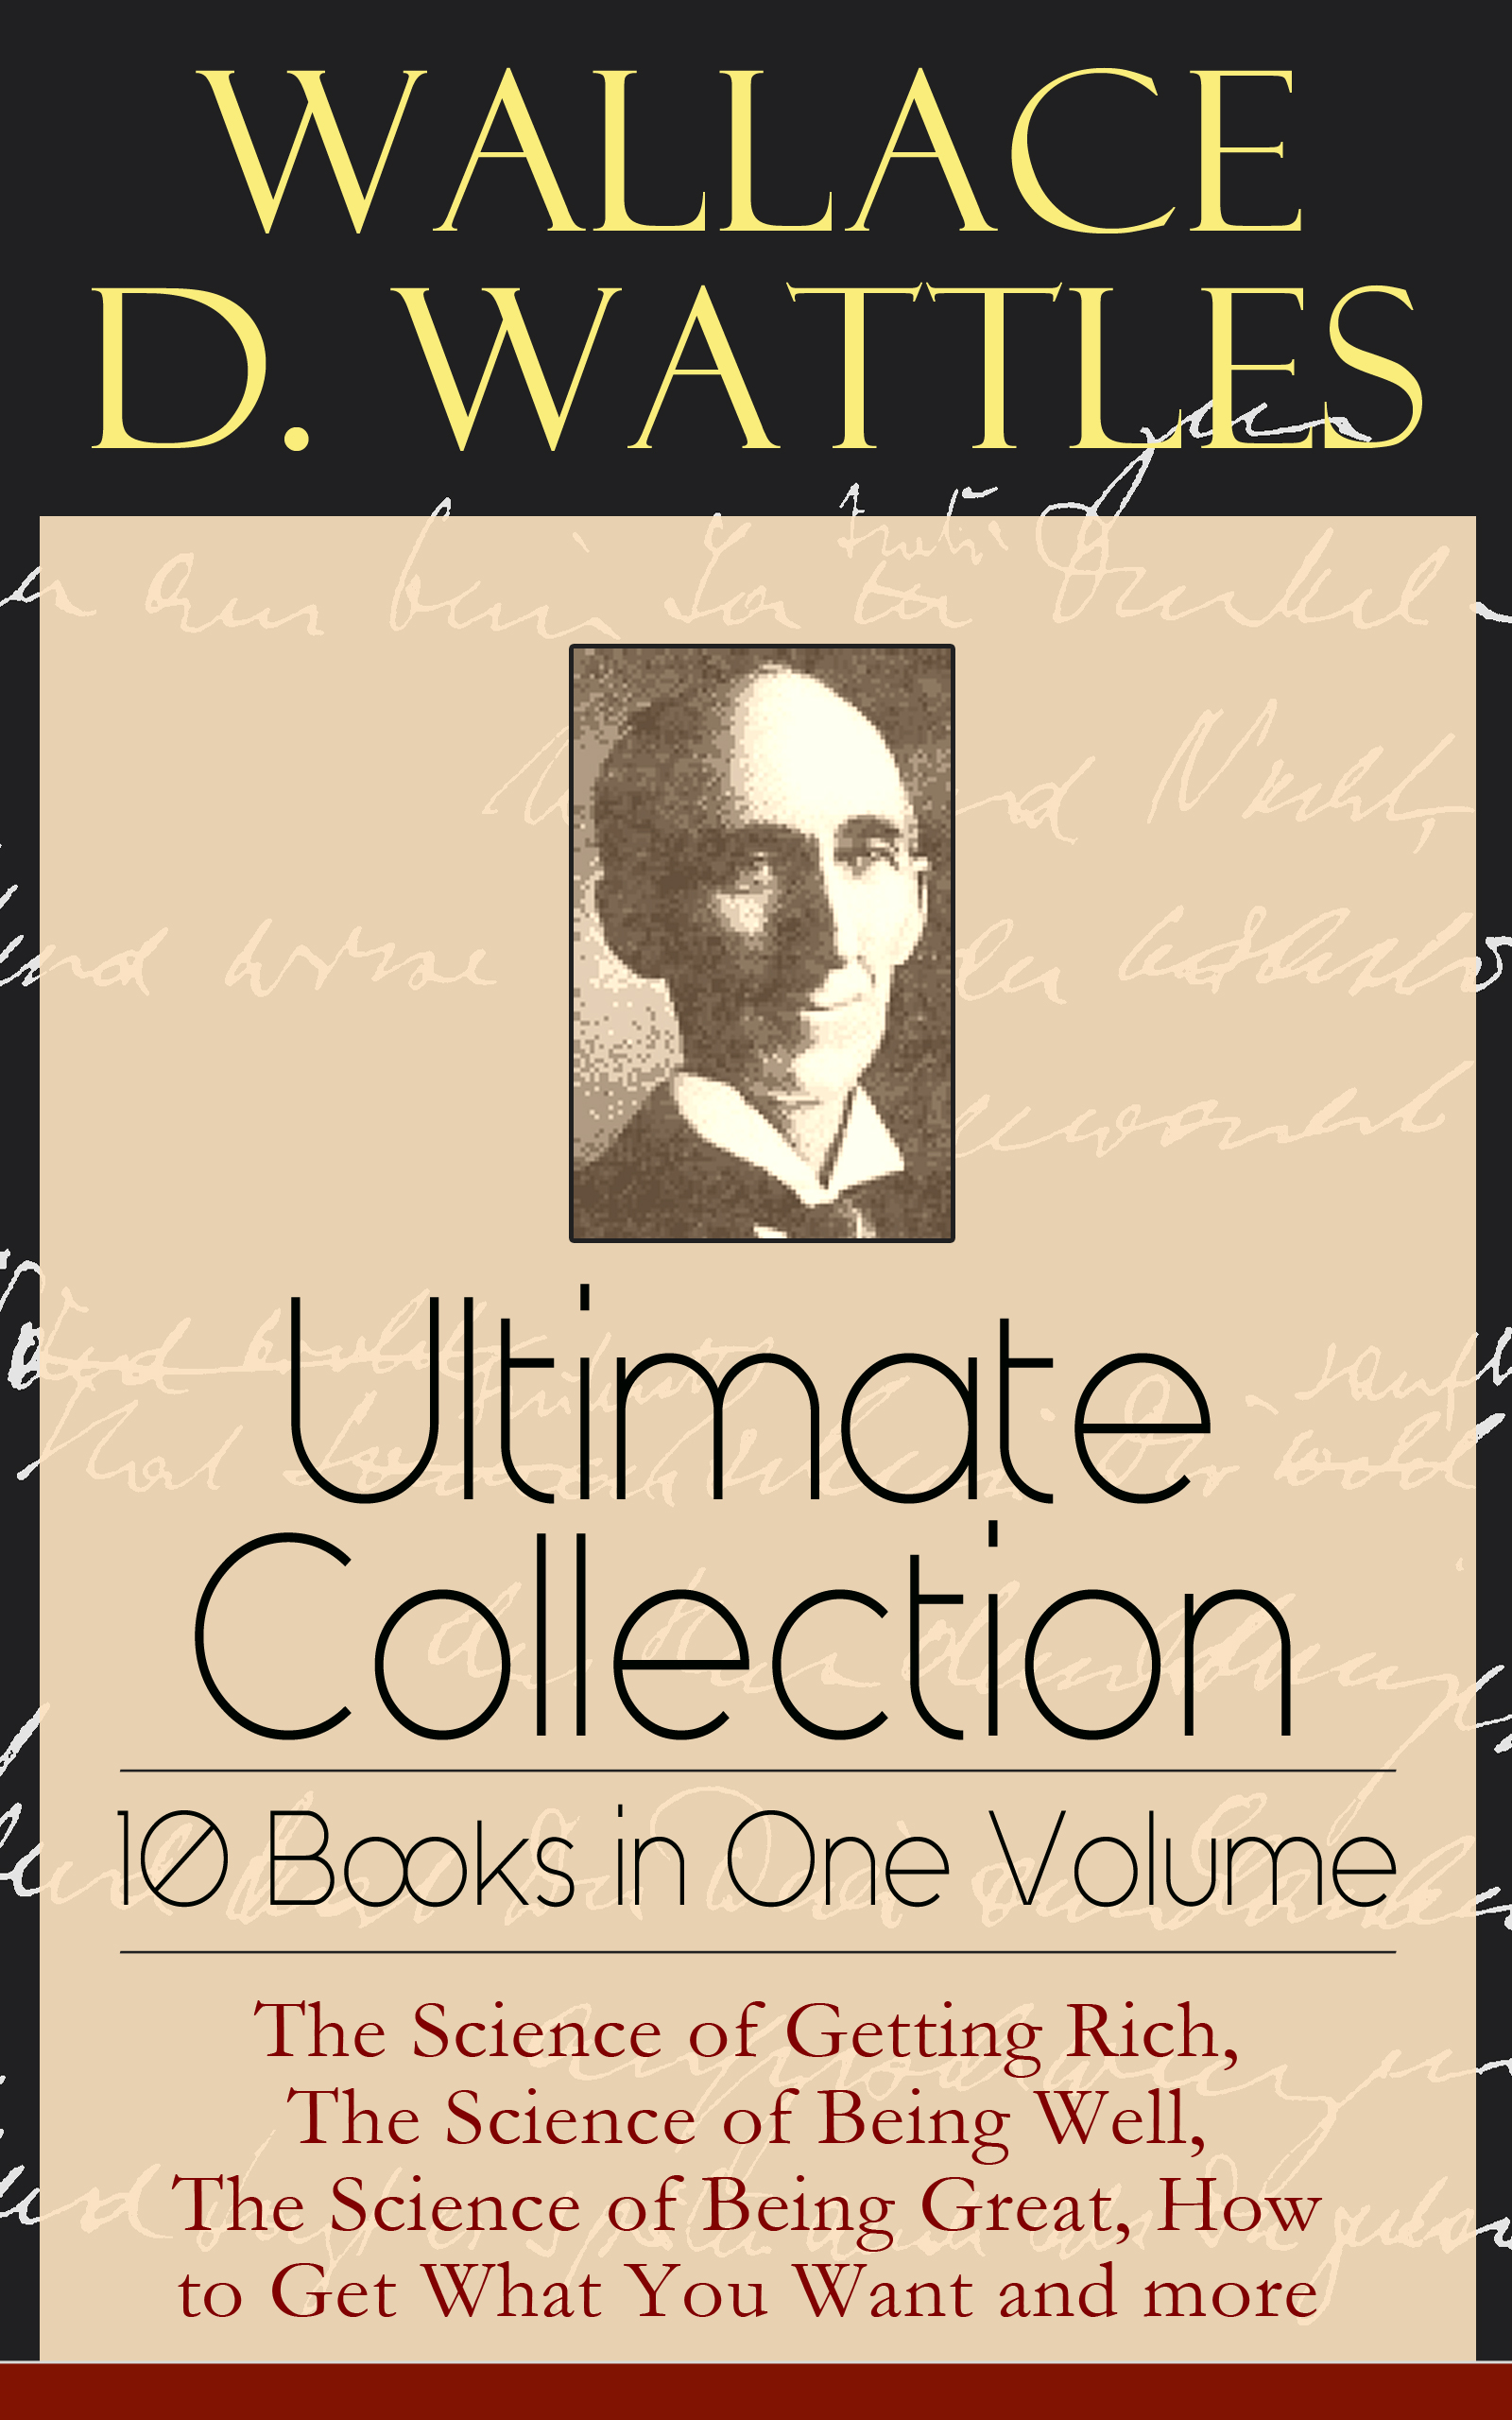 Wallace D. Wattles Wallace D. Wattles Ultimate Collection - 10 Books in One Volume: The Science of Getting Rich, The Science of Being Well, The Science of Being Great, How to Get What You Want and more ball p curiosity how science became interested in everything